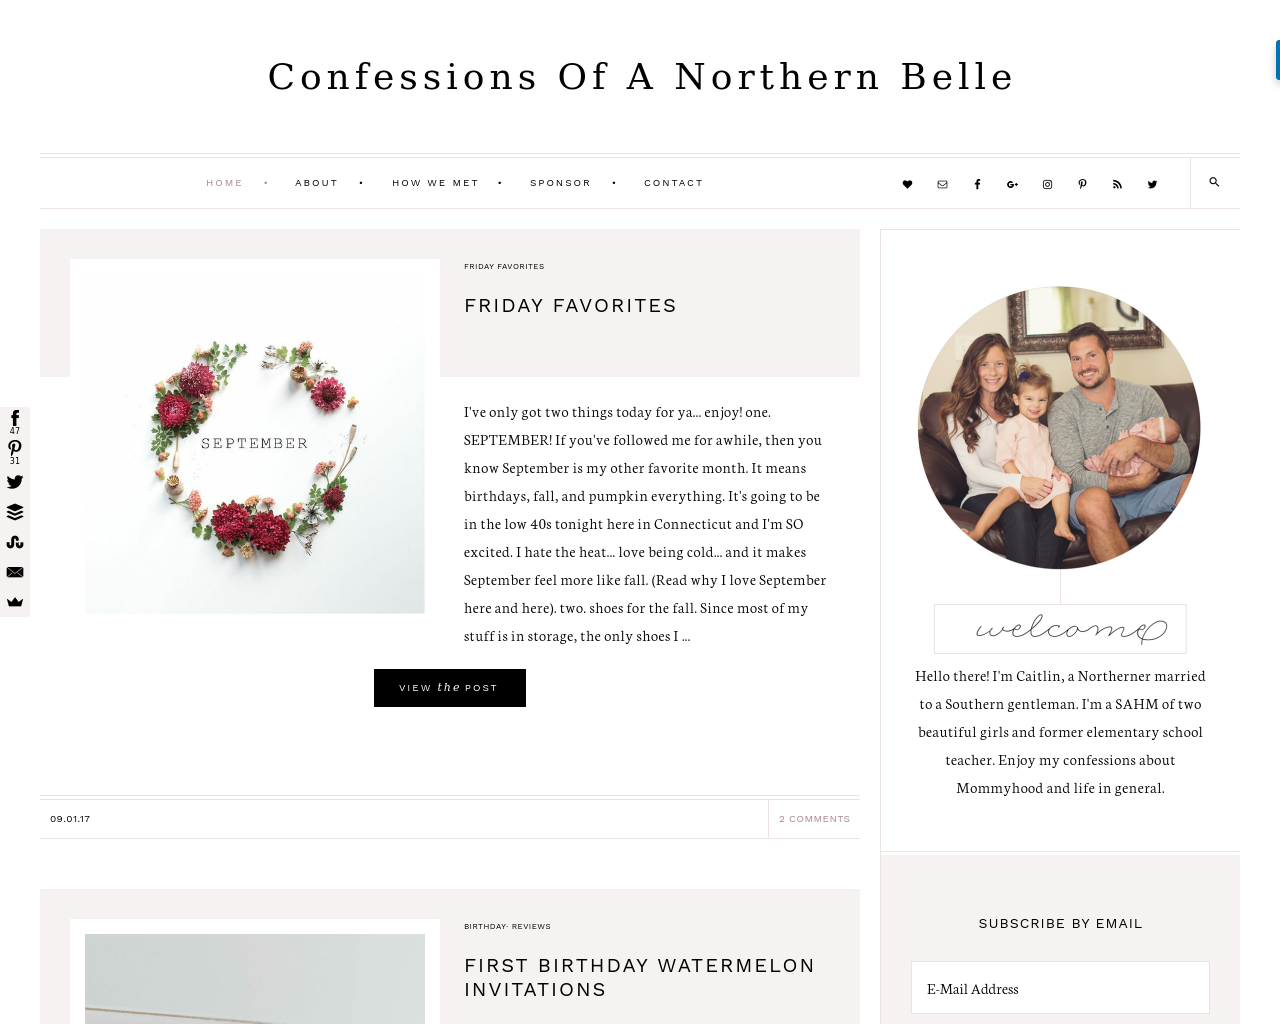 Confessionsofanorthernbelle.com-Advertising-Reviews-Pricing